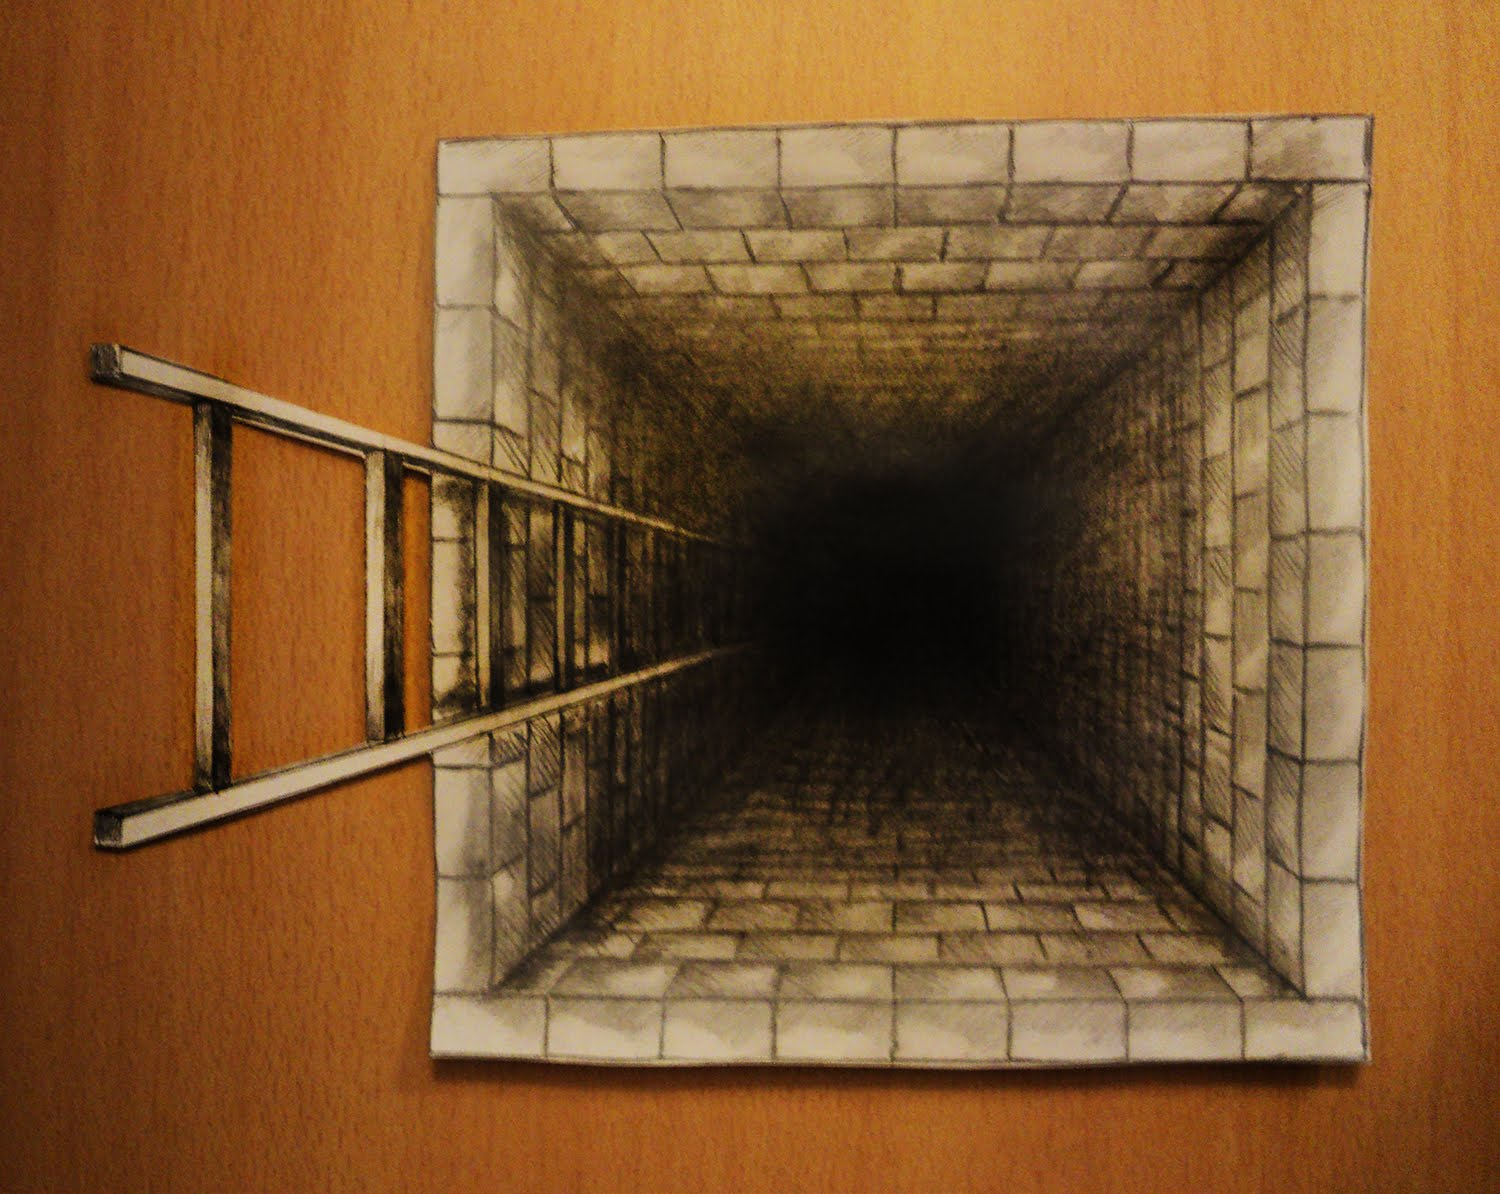 Drawn optical illusion hole in wall One draw draw to with